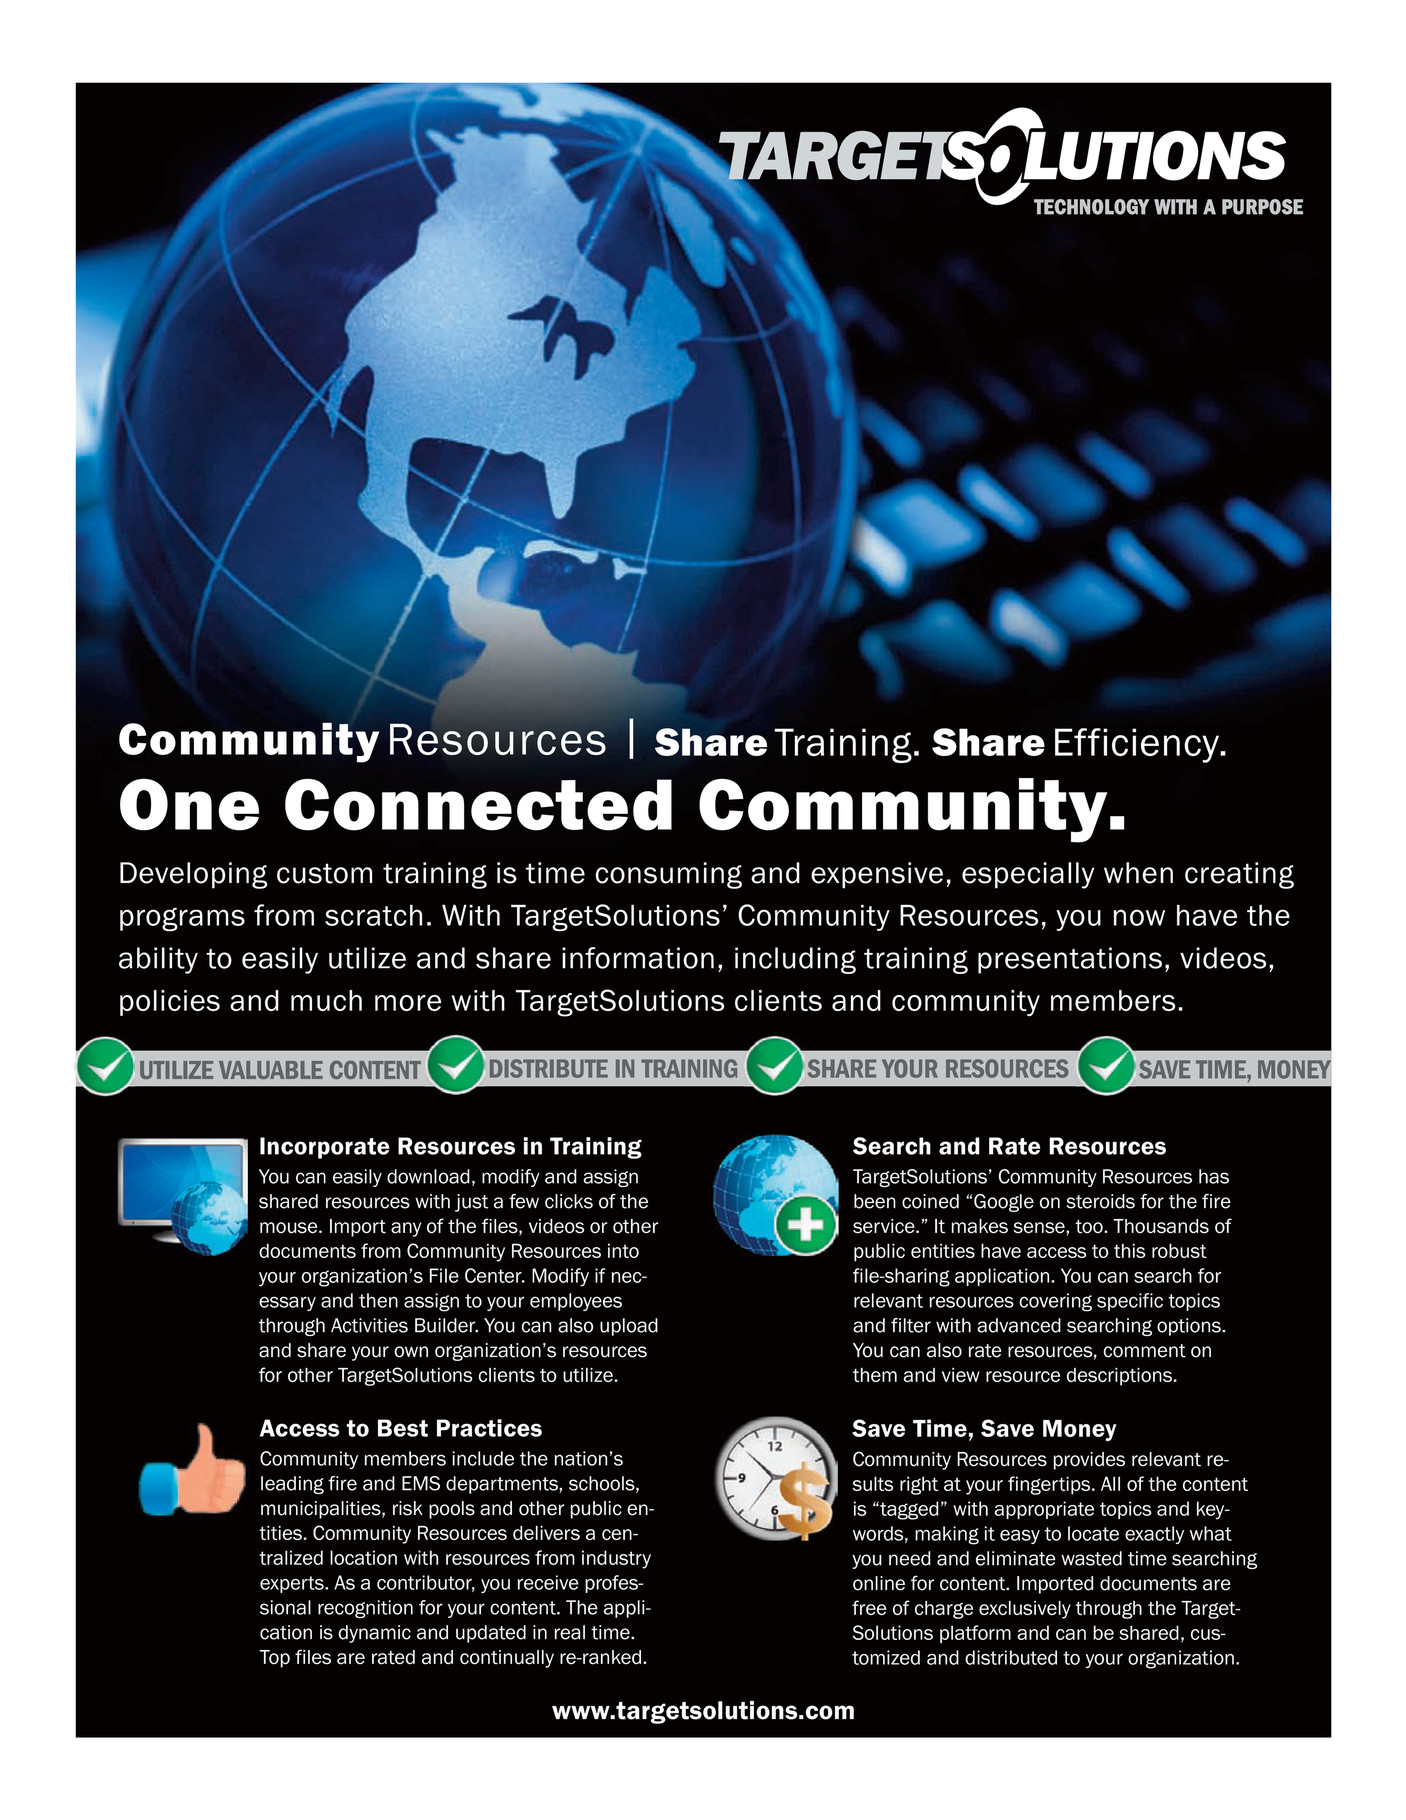 TargetSolutions - Community Resources Overview - Page 1